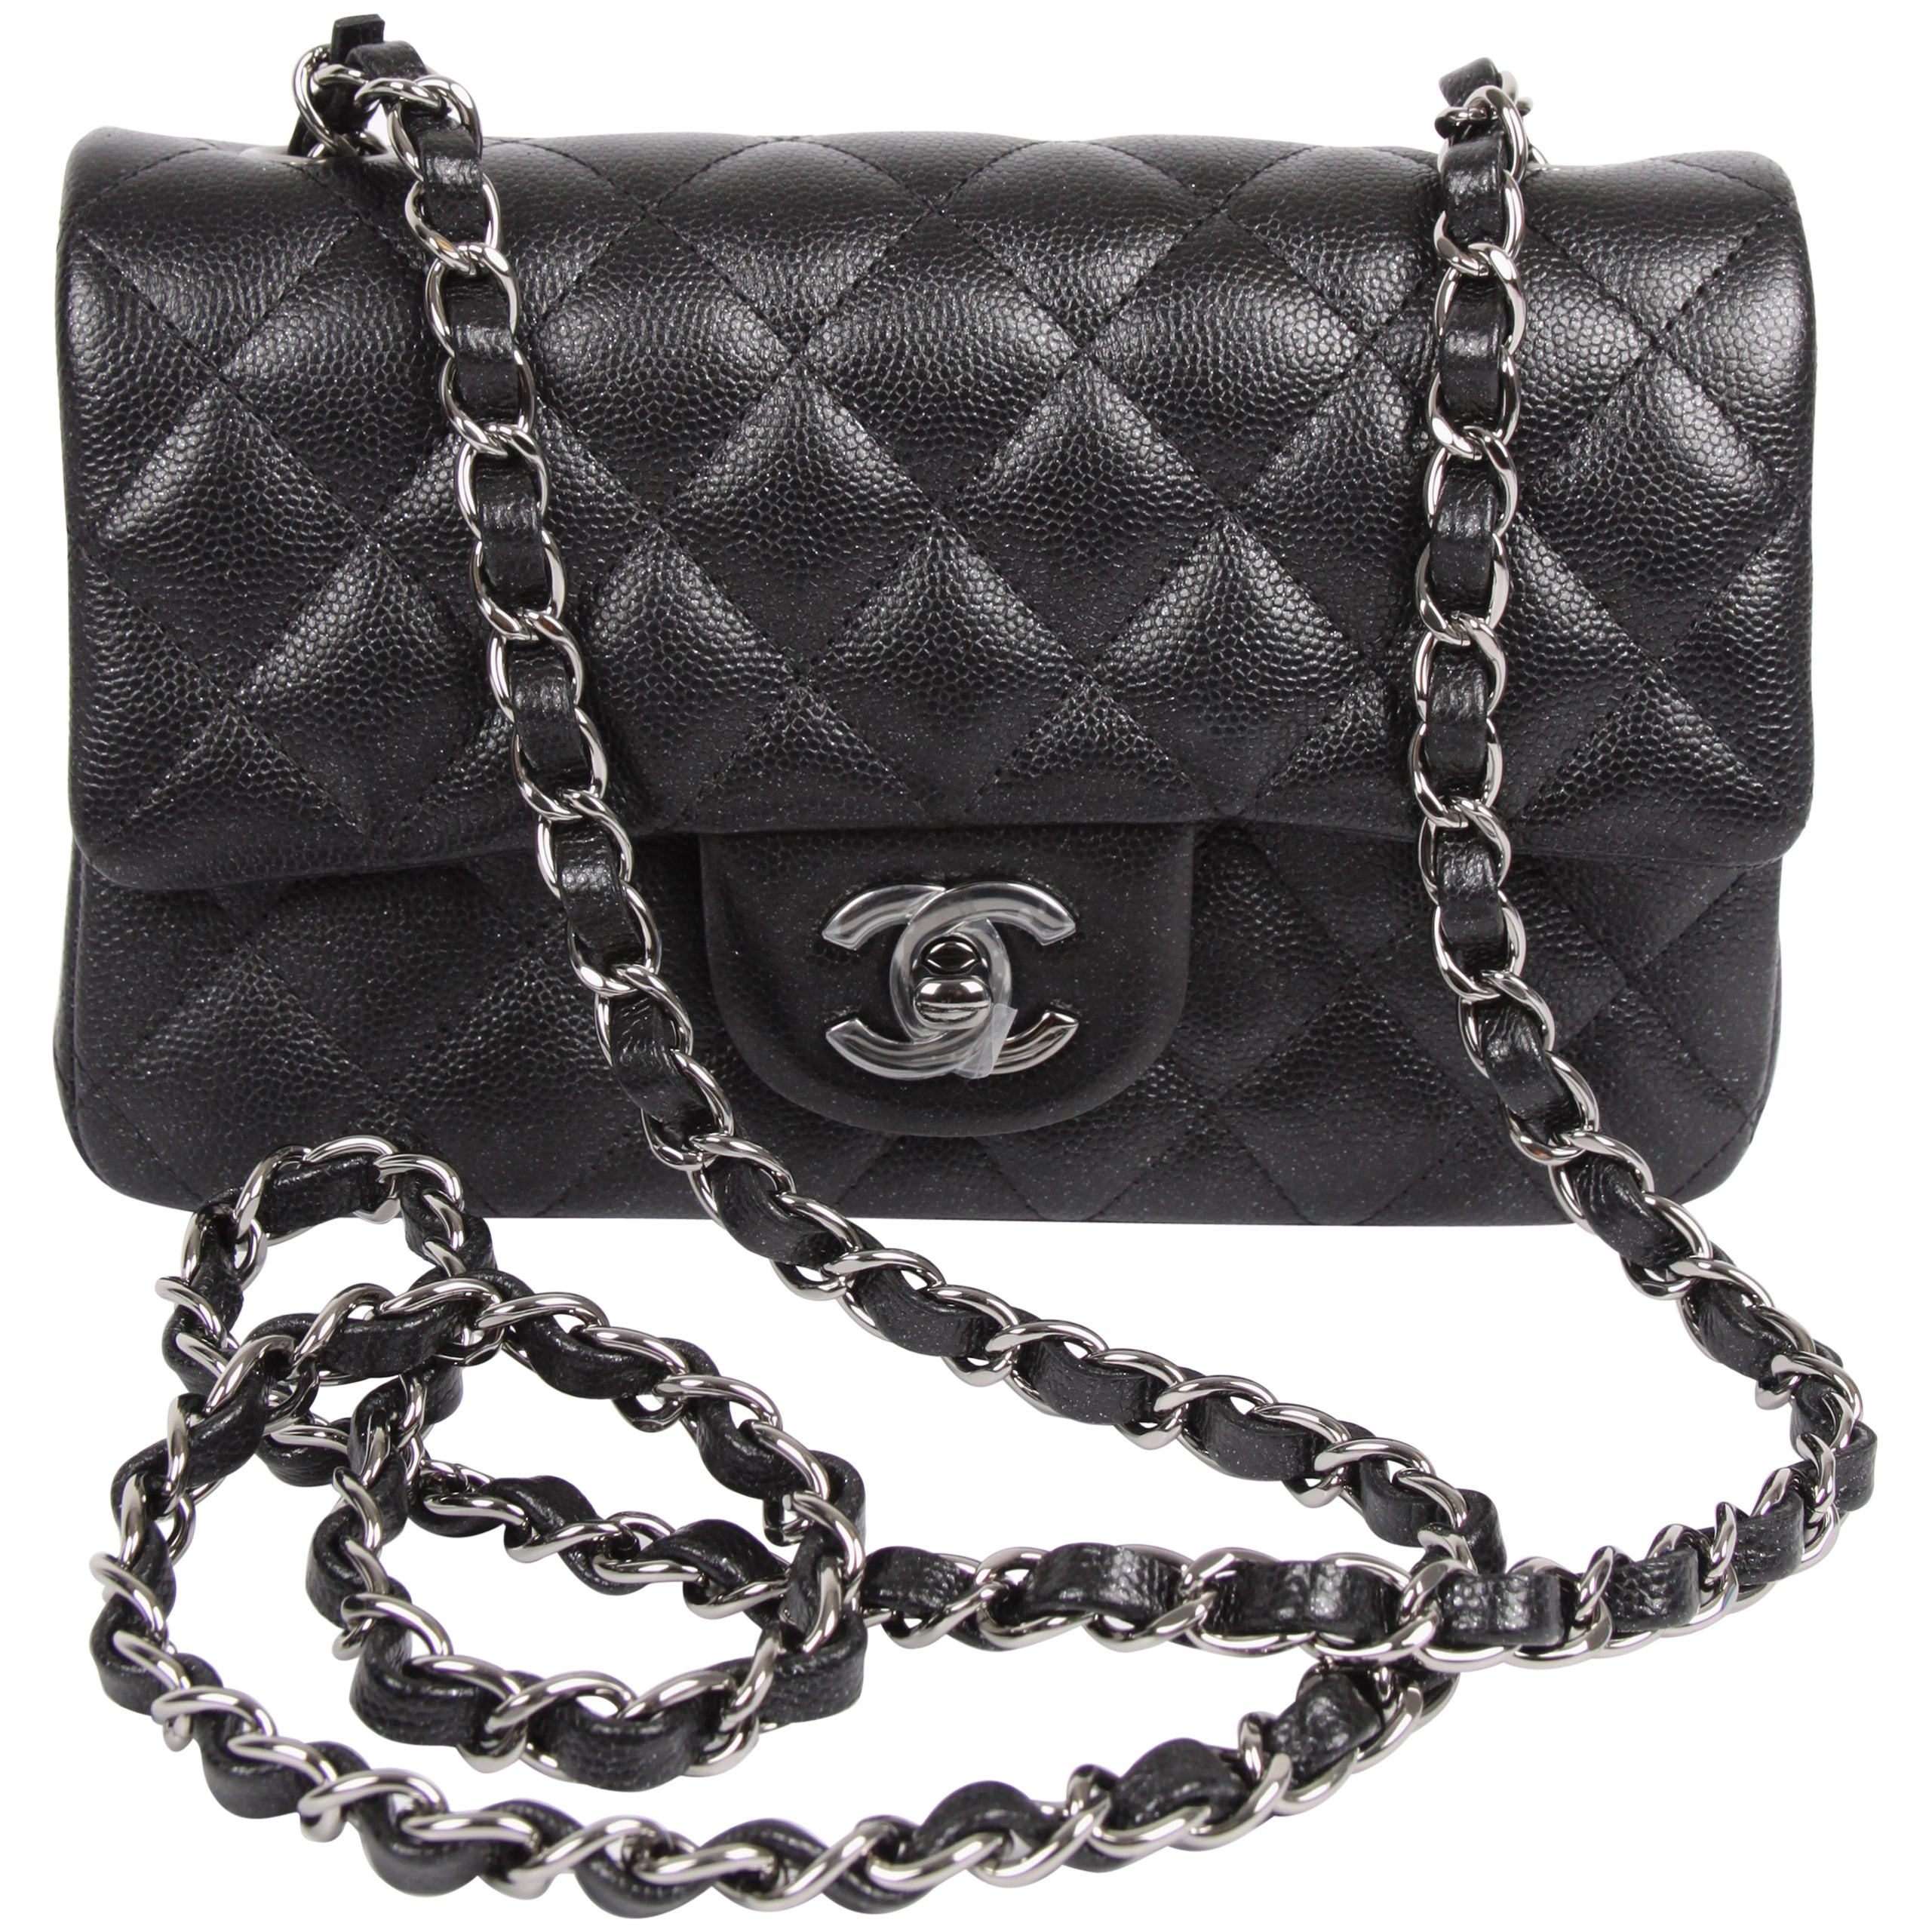 c559478d4128 Chanel 2.55 Classic Mini Rectangular Flap Bag Crossbody - black sparkling  at 1stdibs